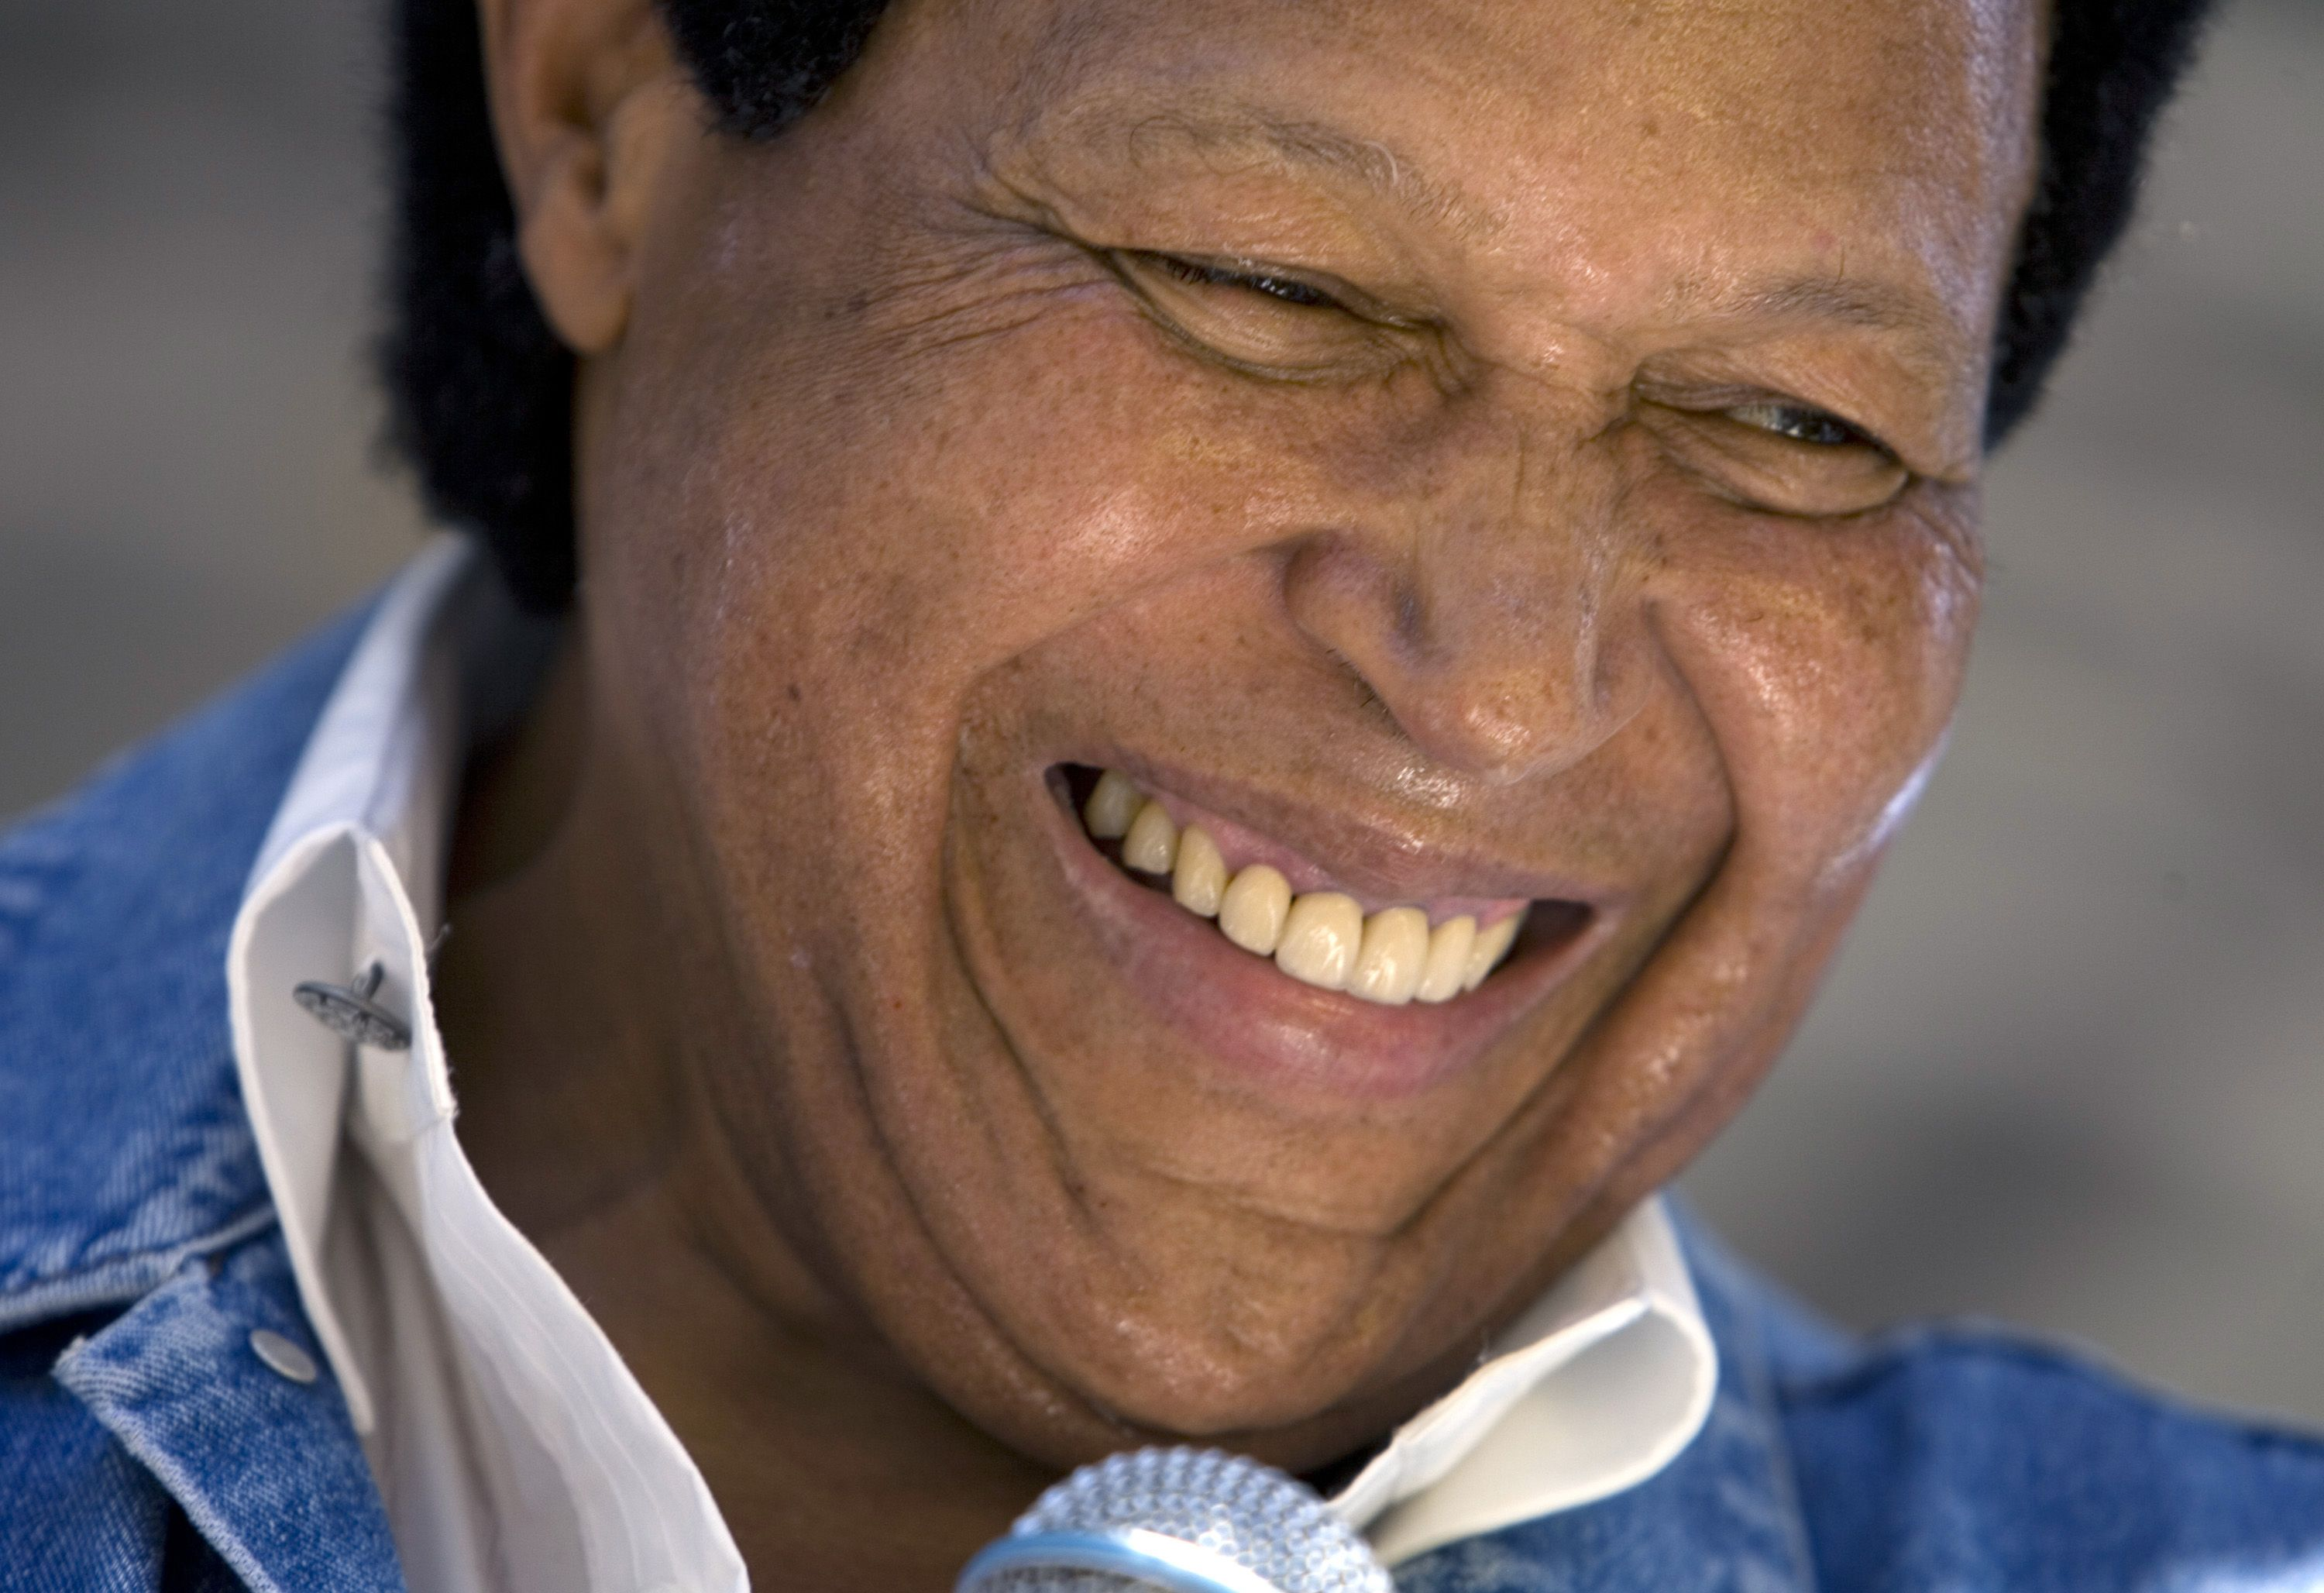 Chubby Checker sues HP over penis app